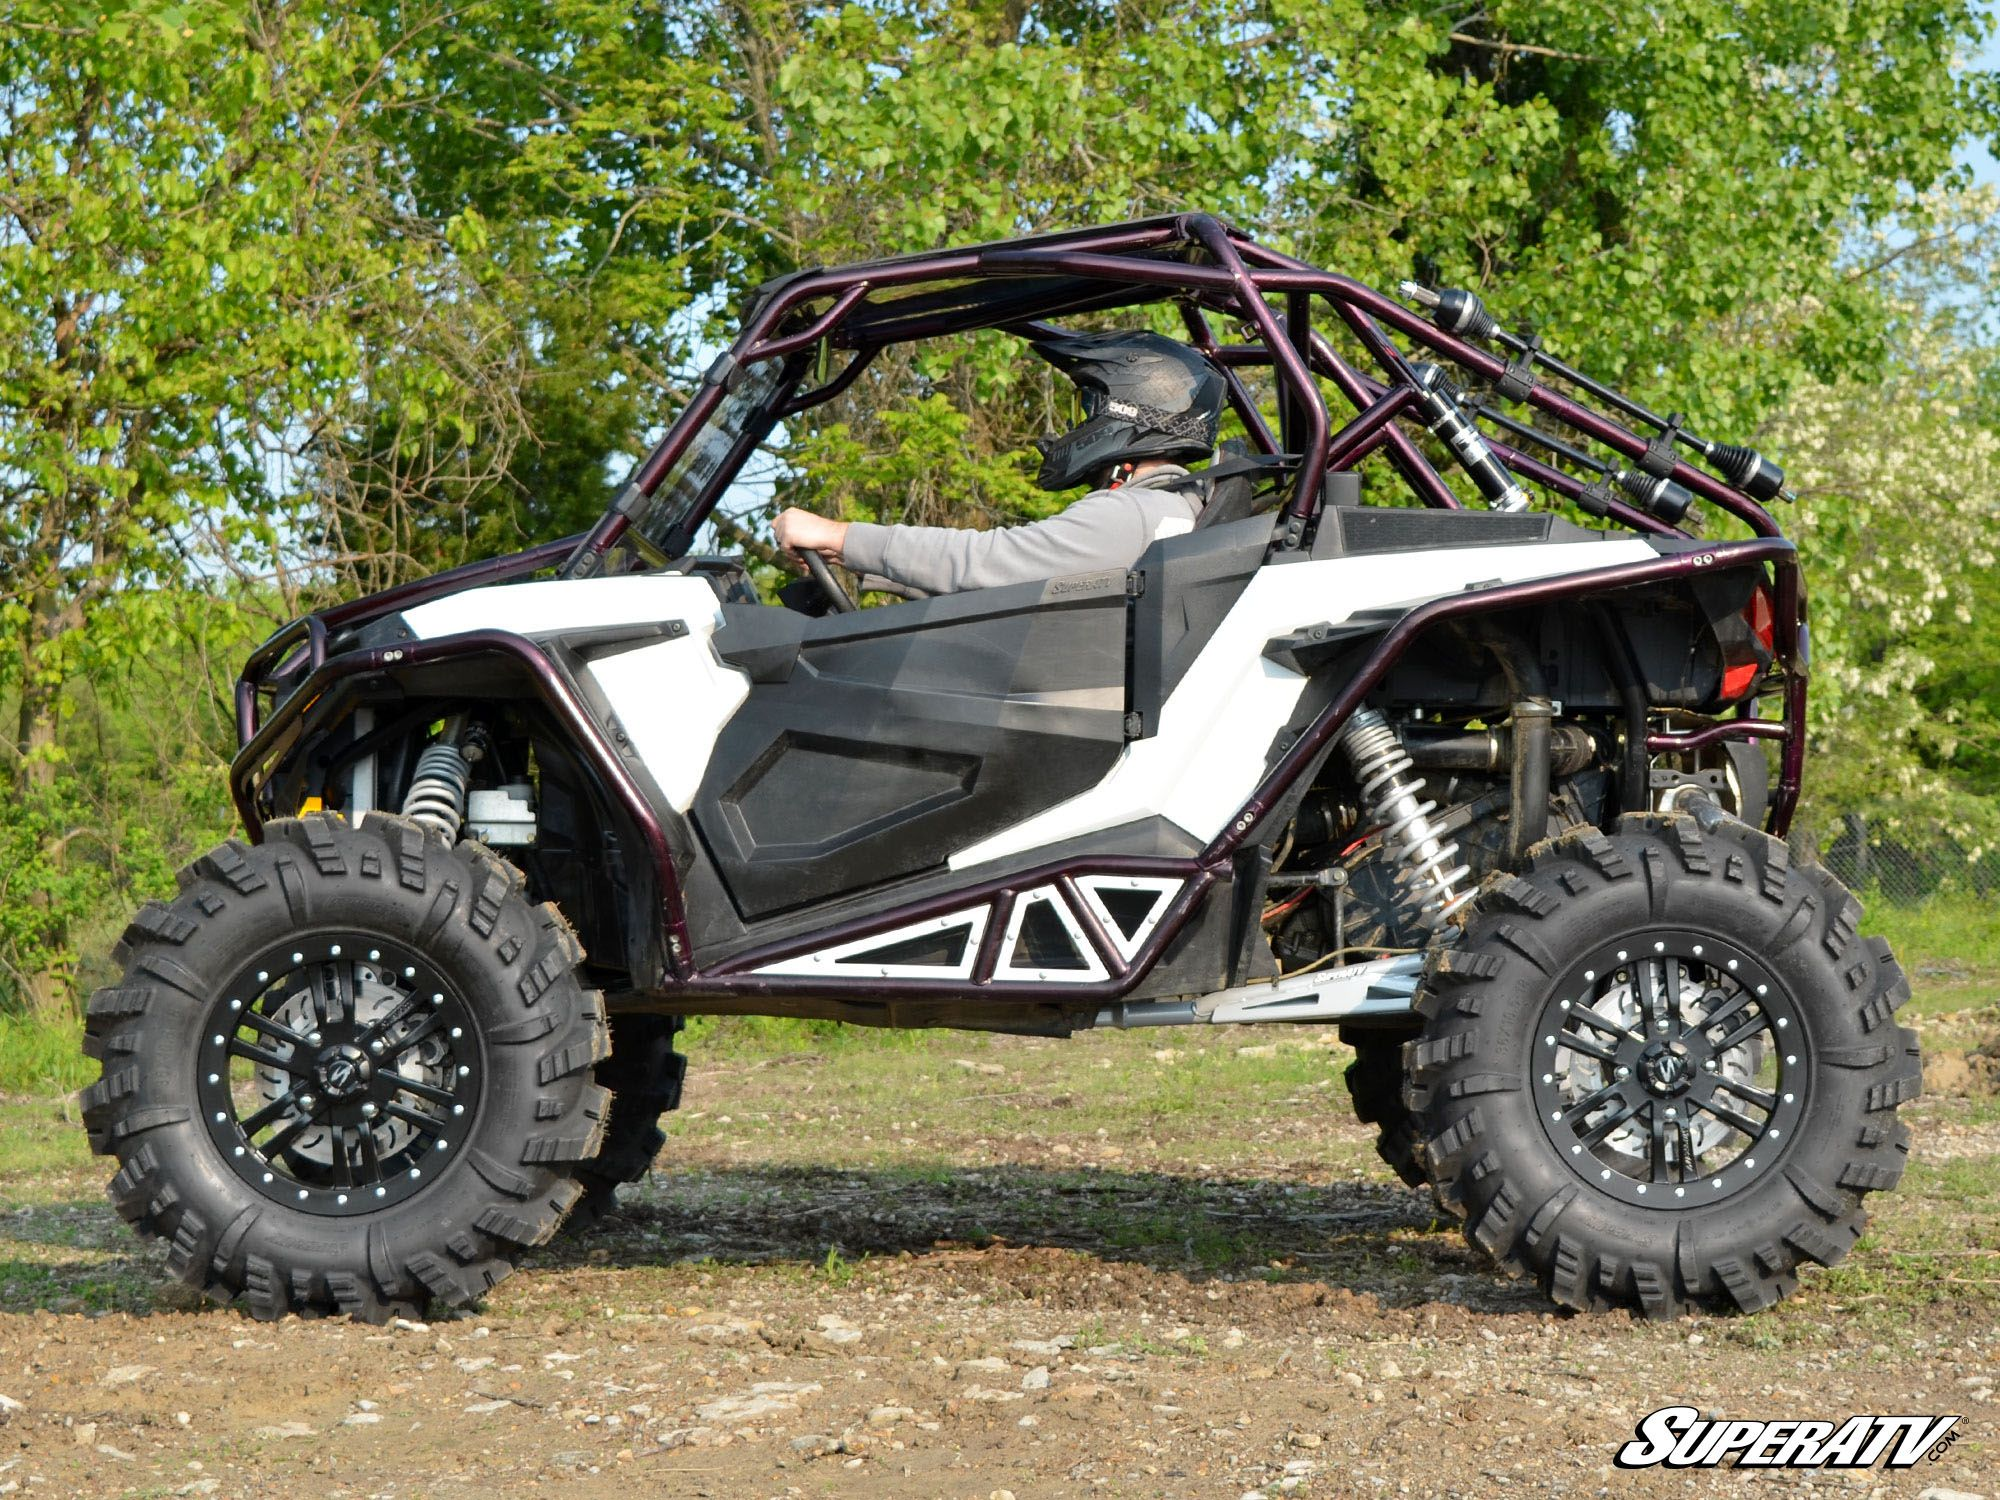 superatv polaris rzr 1000 6 portal gear lift bad. Black Bedroom Furniture Sets. Home Design Ideas